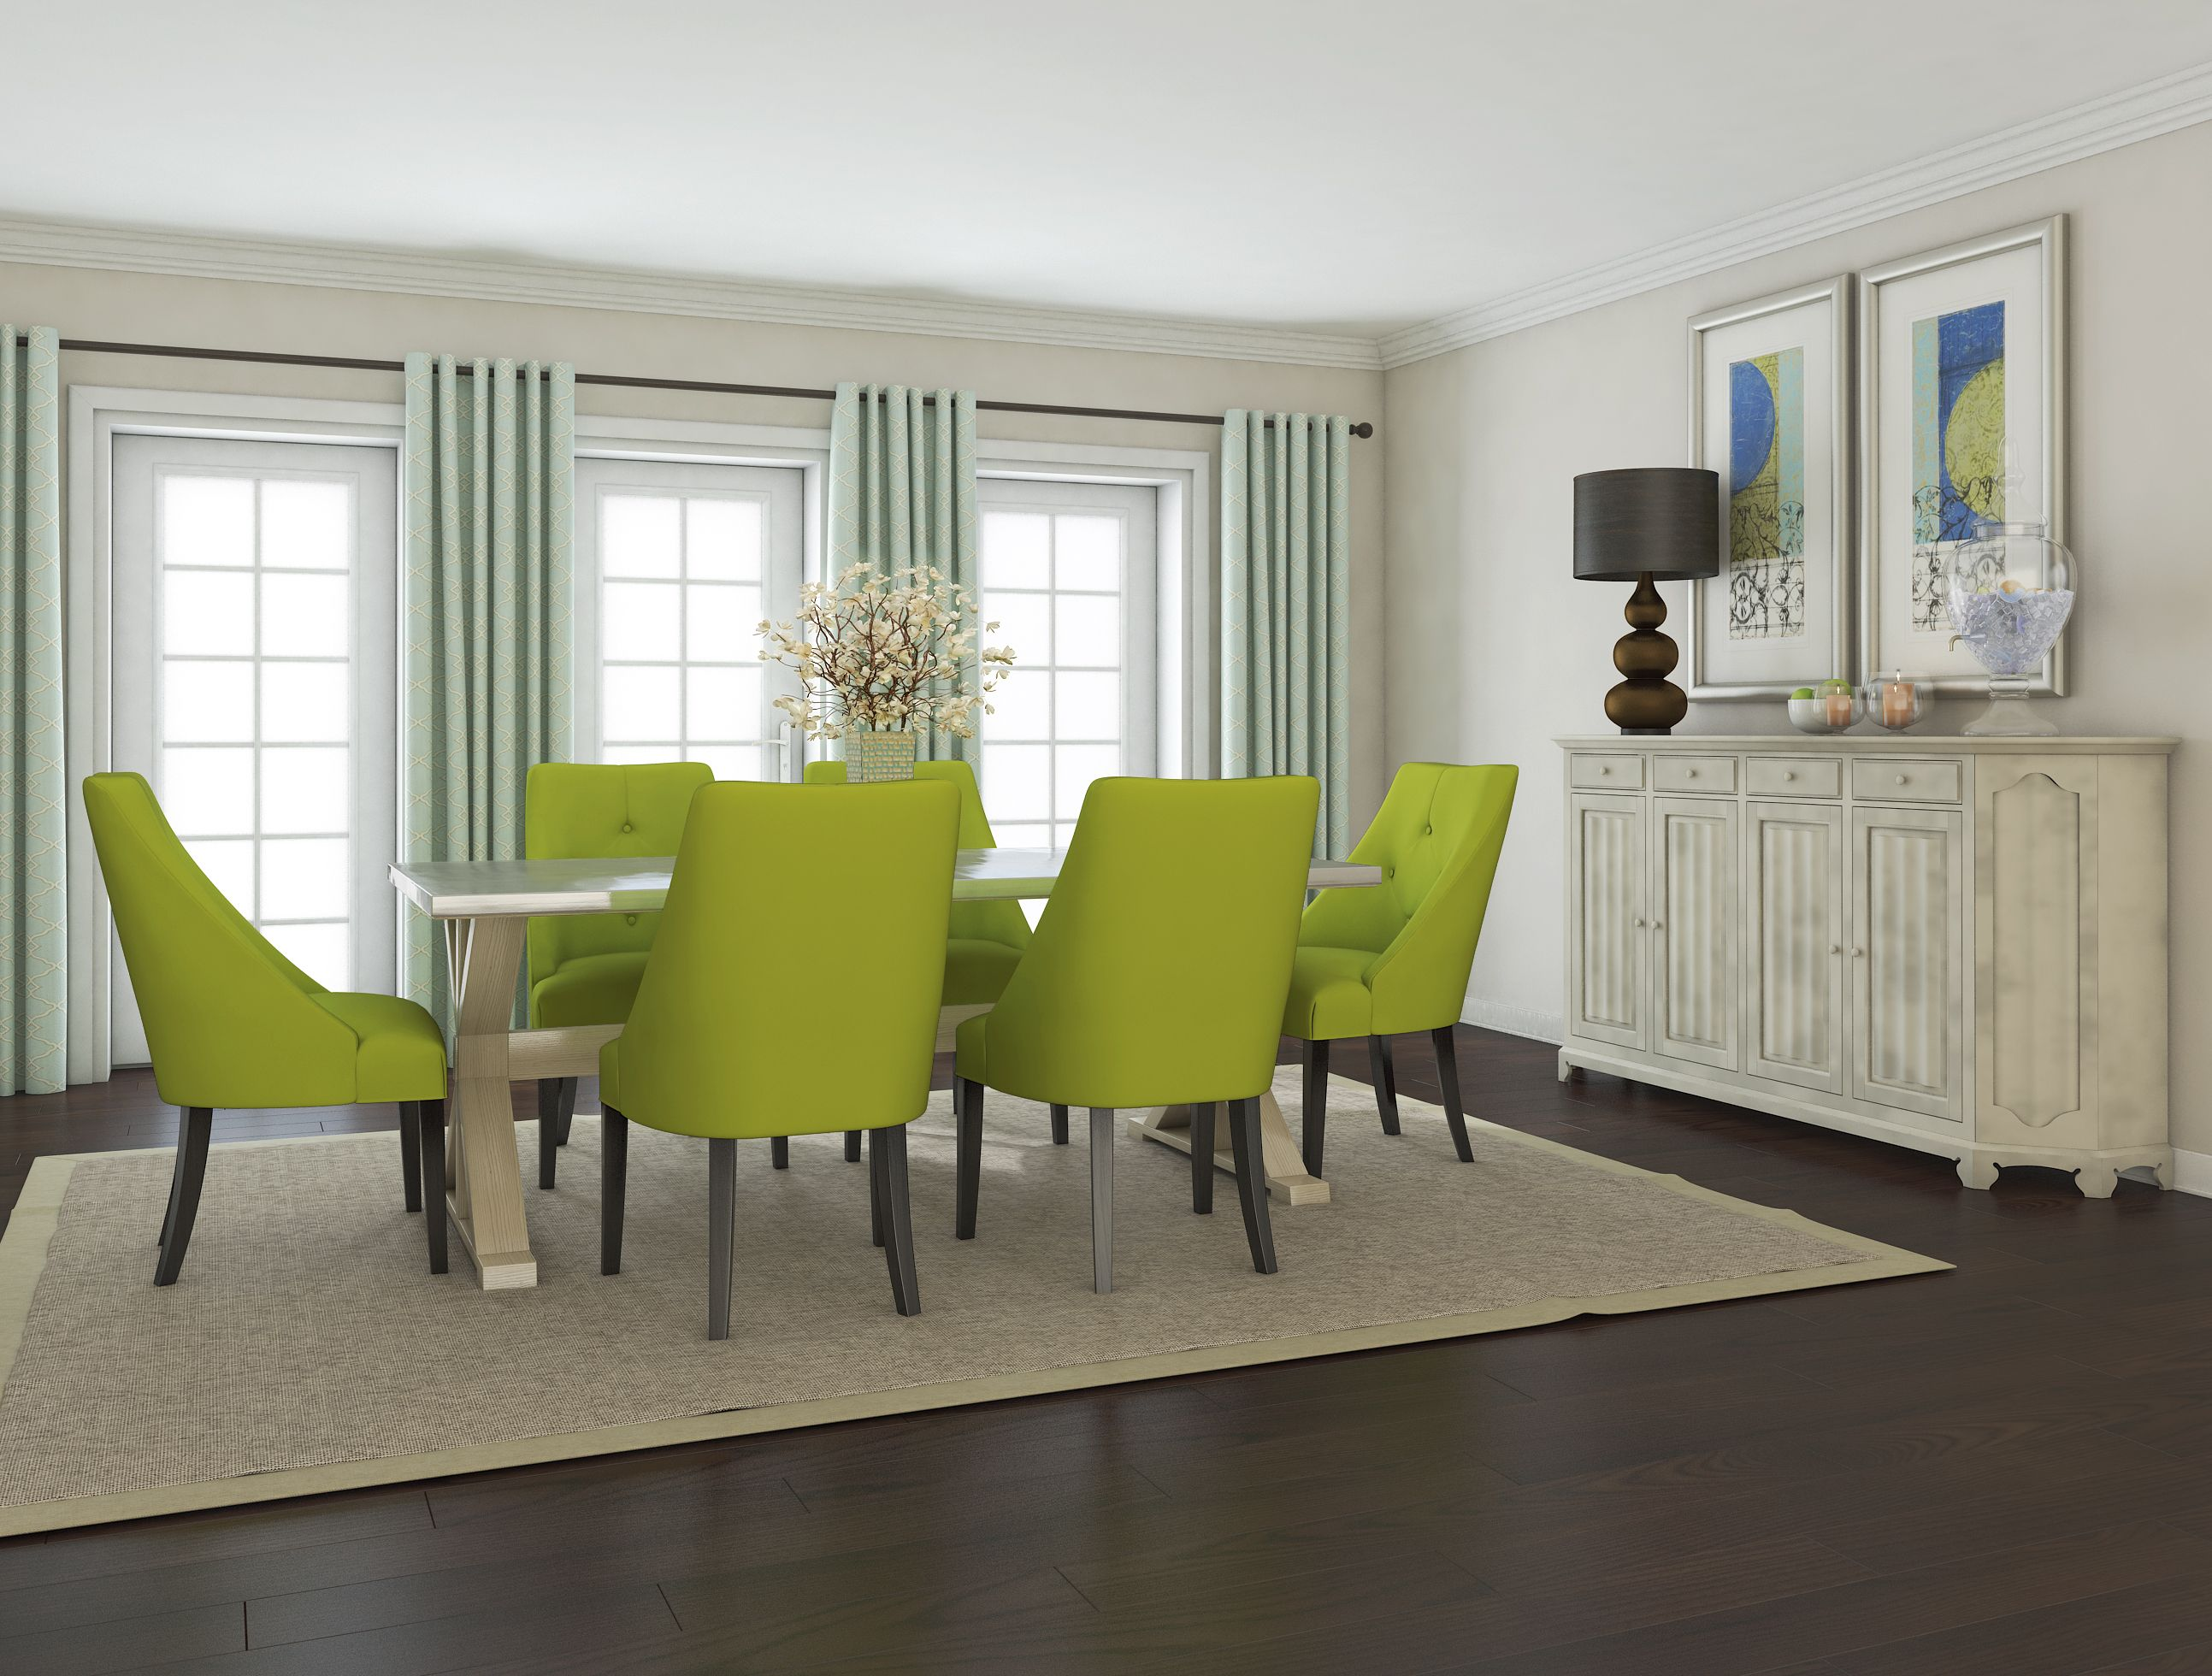 Dining RoomContemporary Room Ideas With White Table Plus Flowers Vase And Green